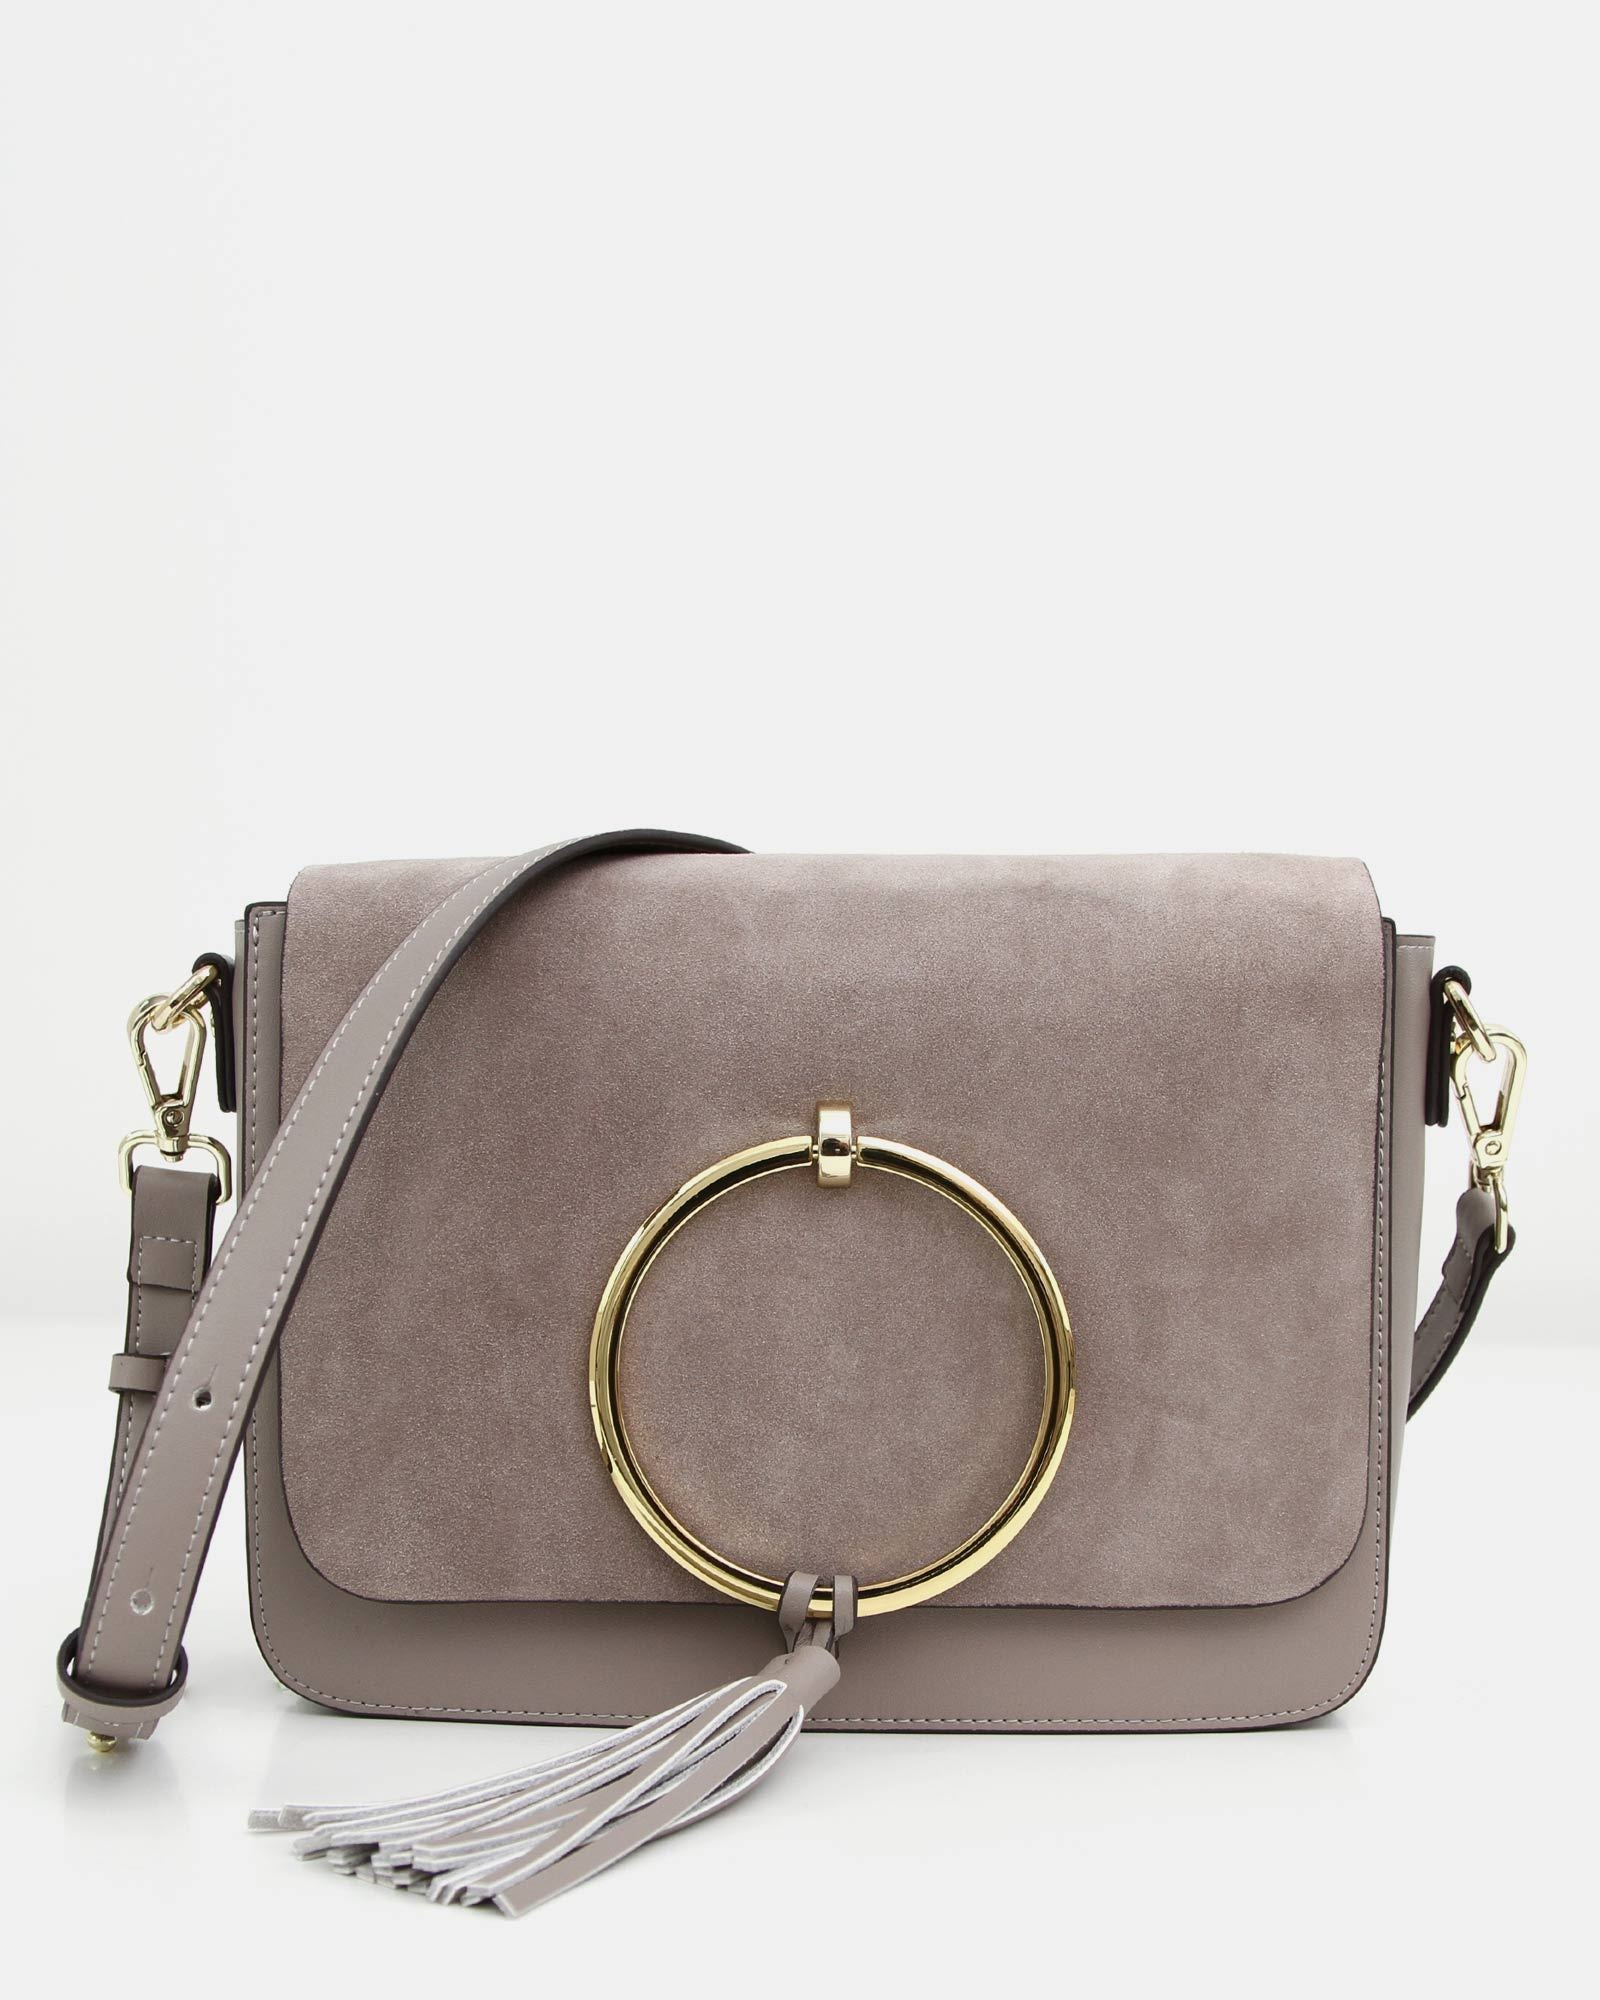 grey-leather-and-suede-bag%20copy.jpg